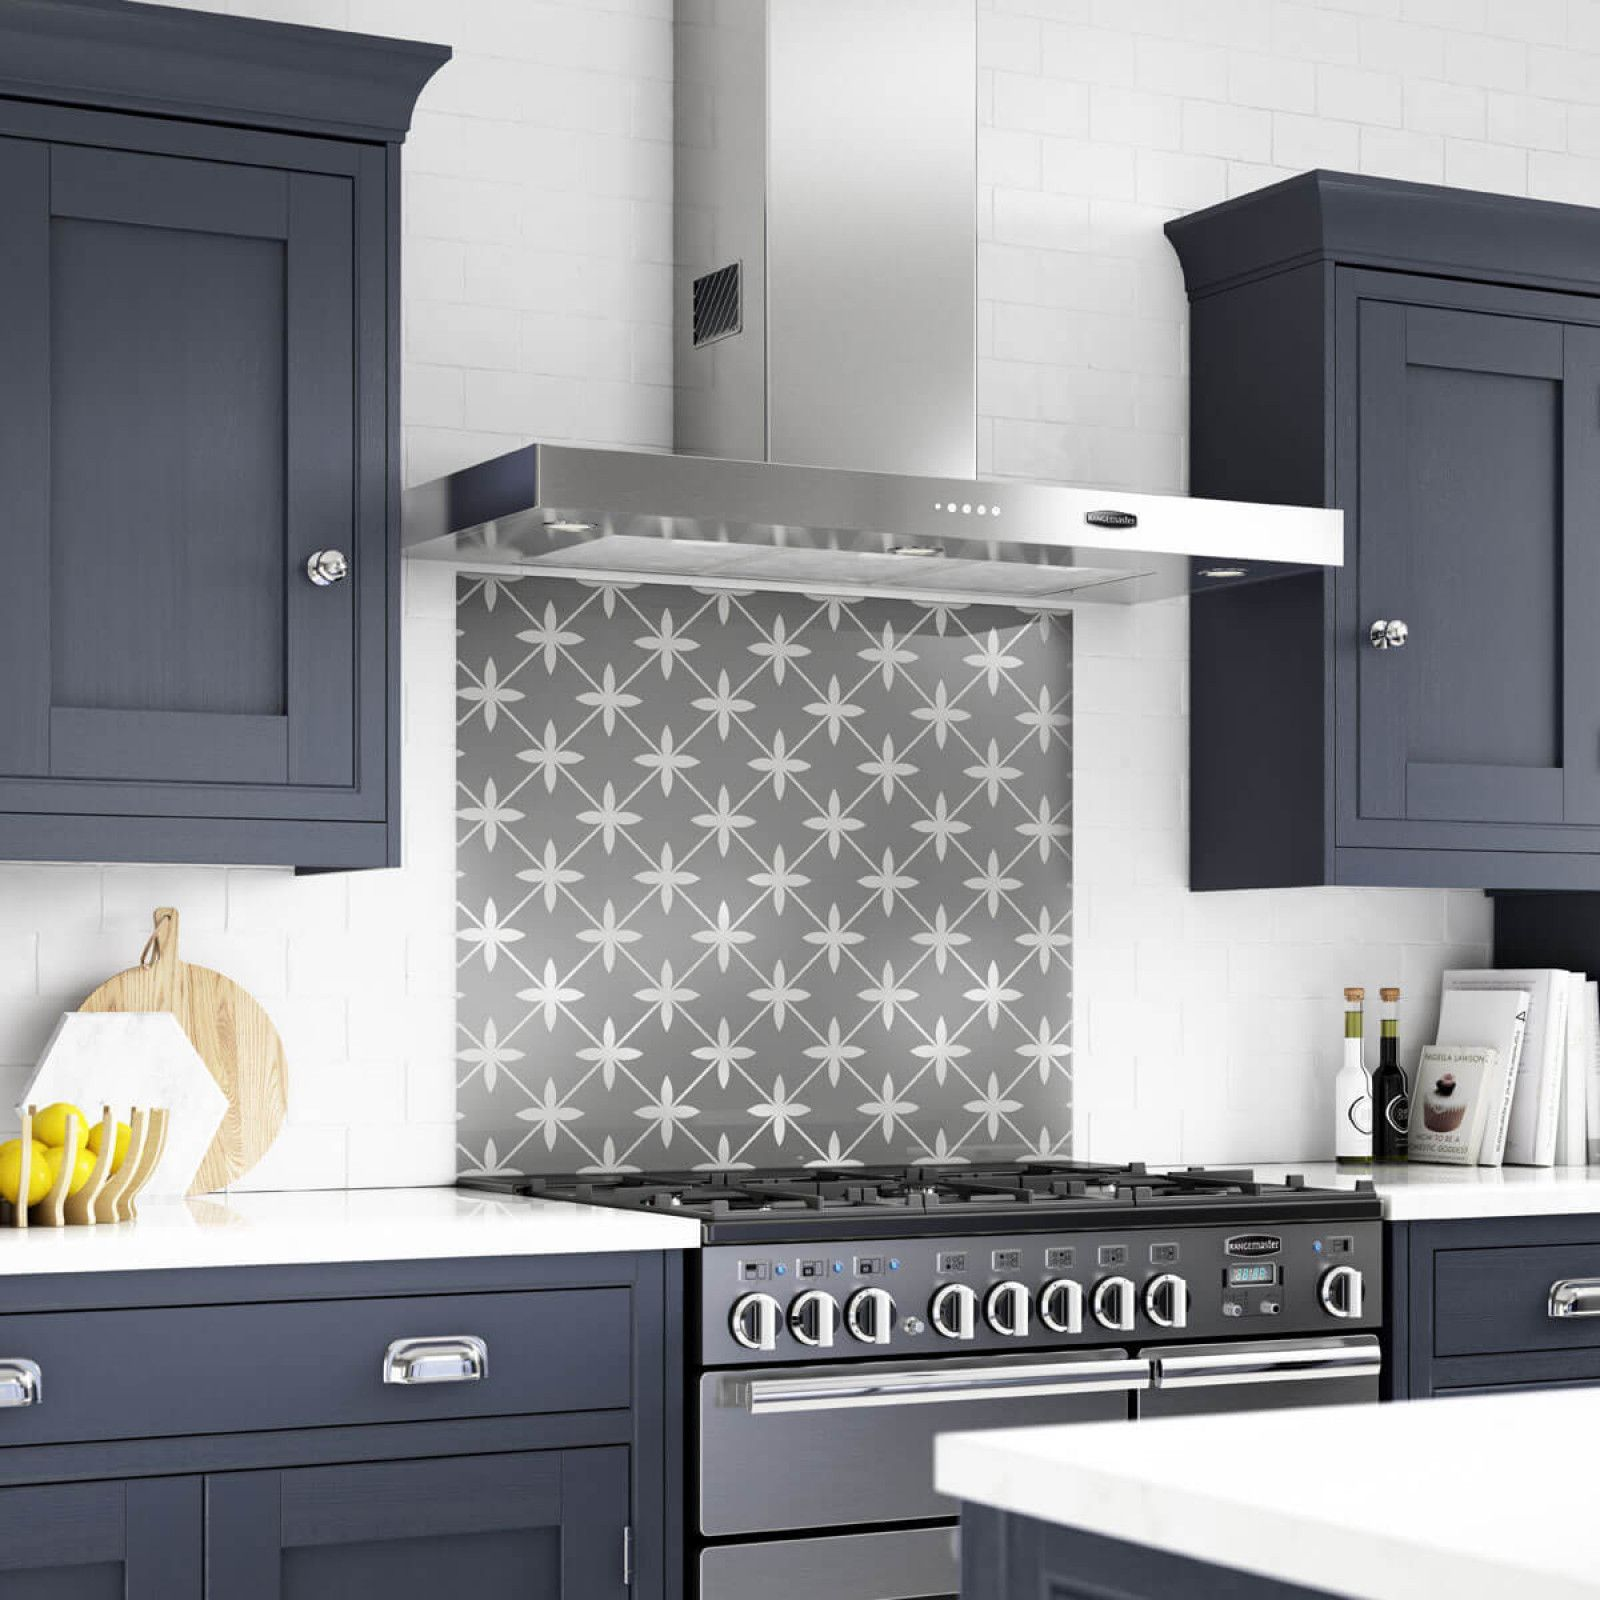 The Wicker Charcoal 900x750mm Splashback from the Statement Prints range  combines timeless elegance with a contemporary f324a28e7